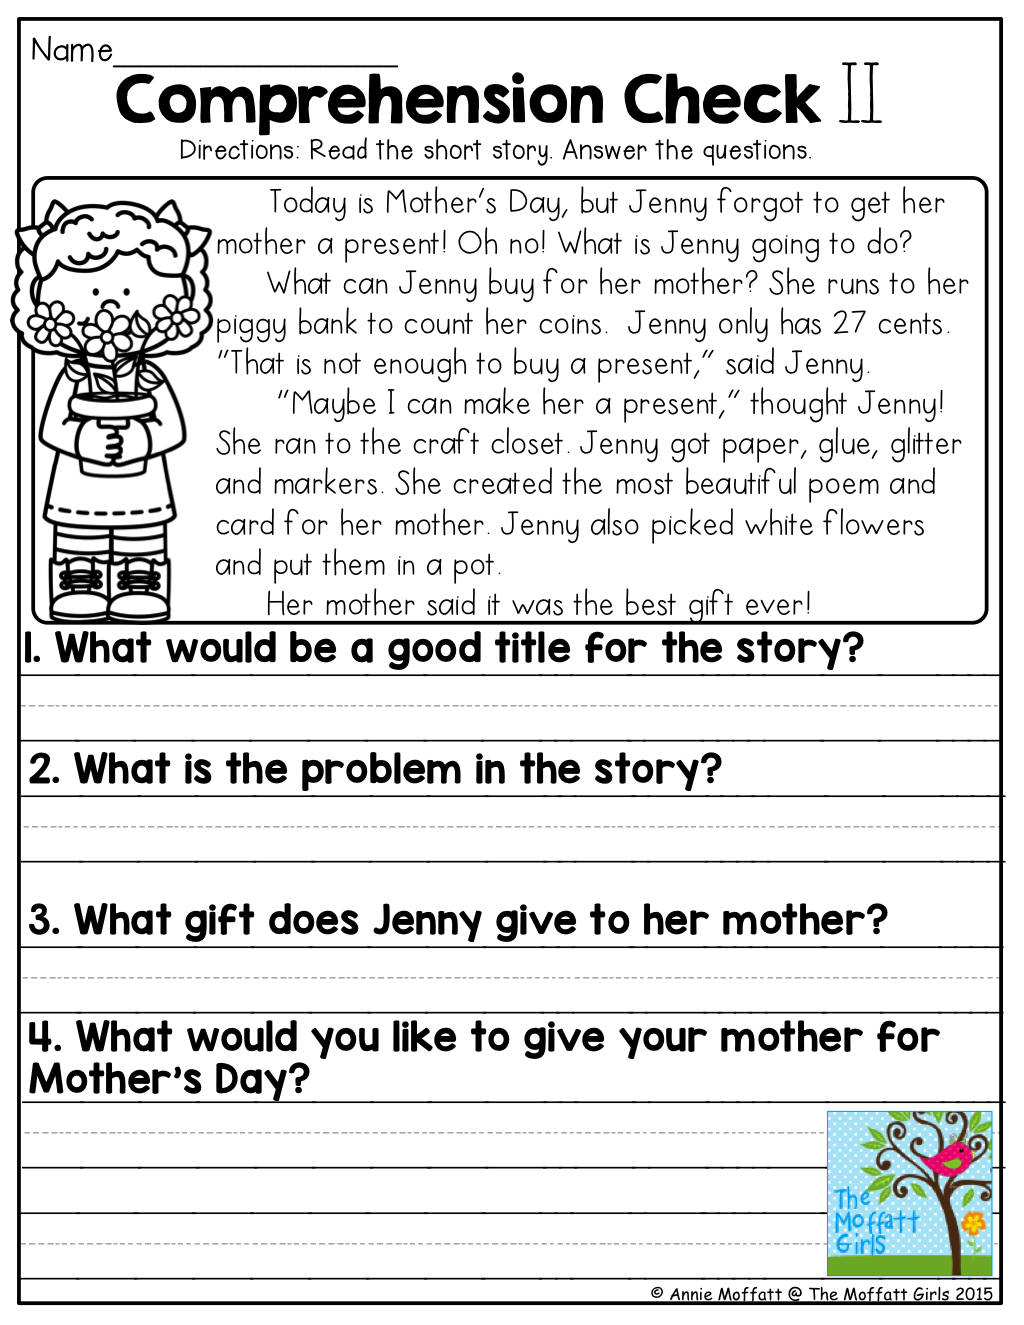 Worksheet Short Story With Comprehension Questions reading comprehension read the short story and answer questions tons of other